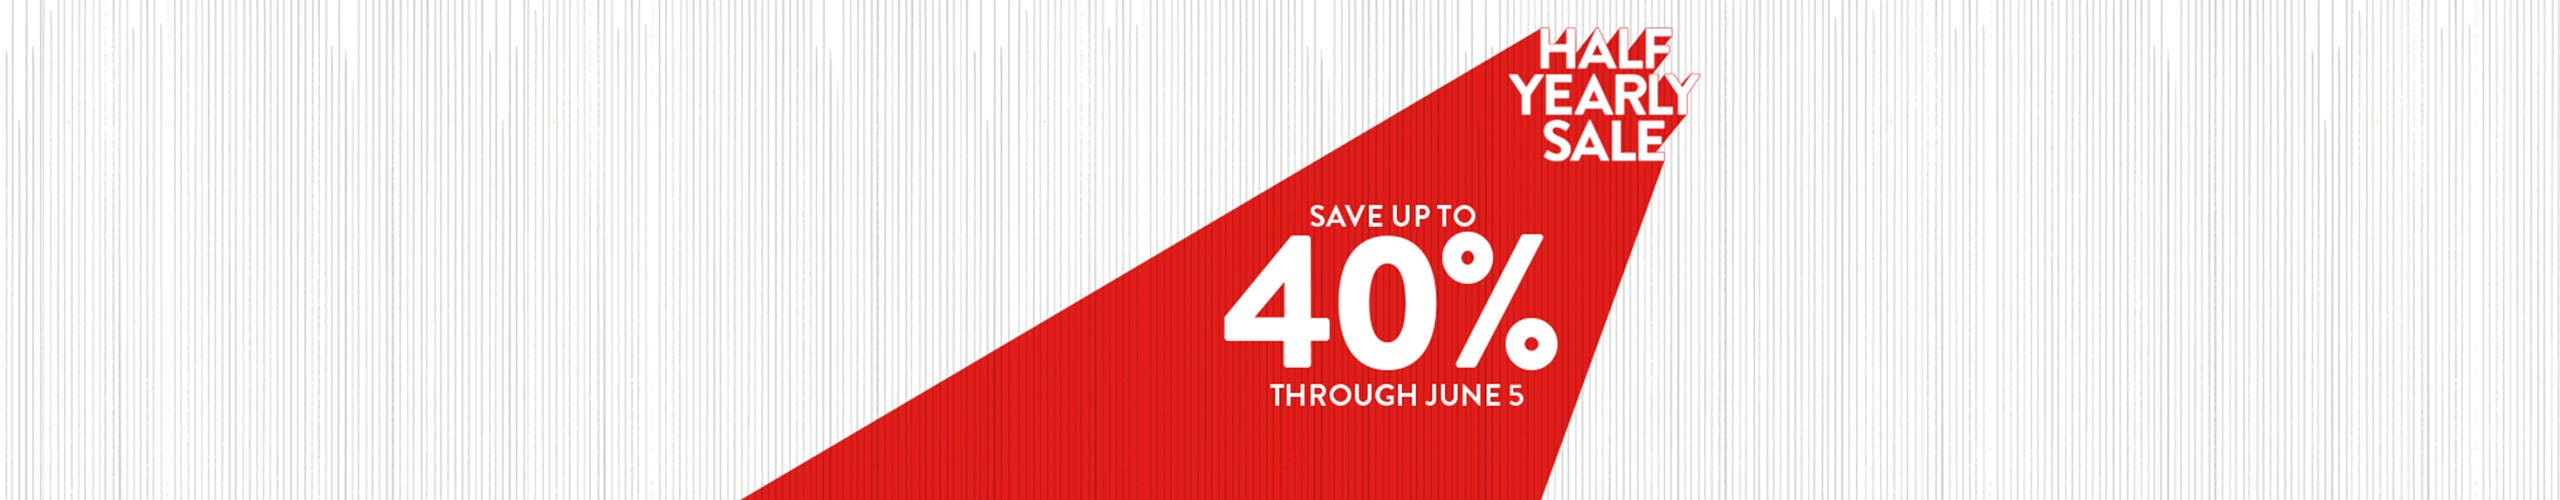 Half Yearly Sale: save up to 40% through June 5.